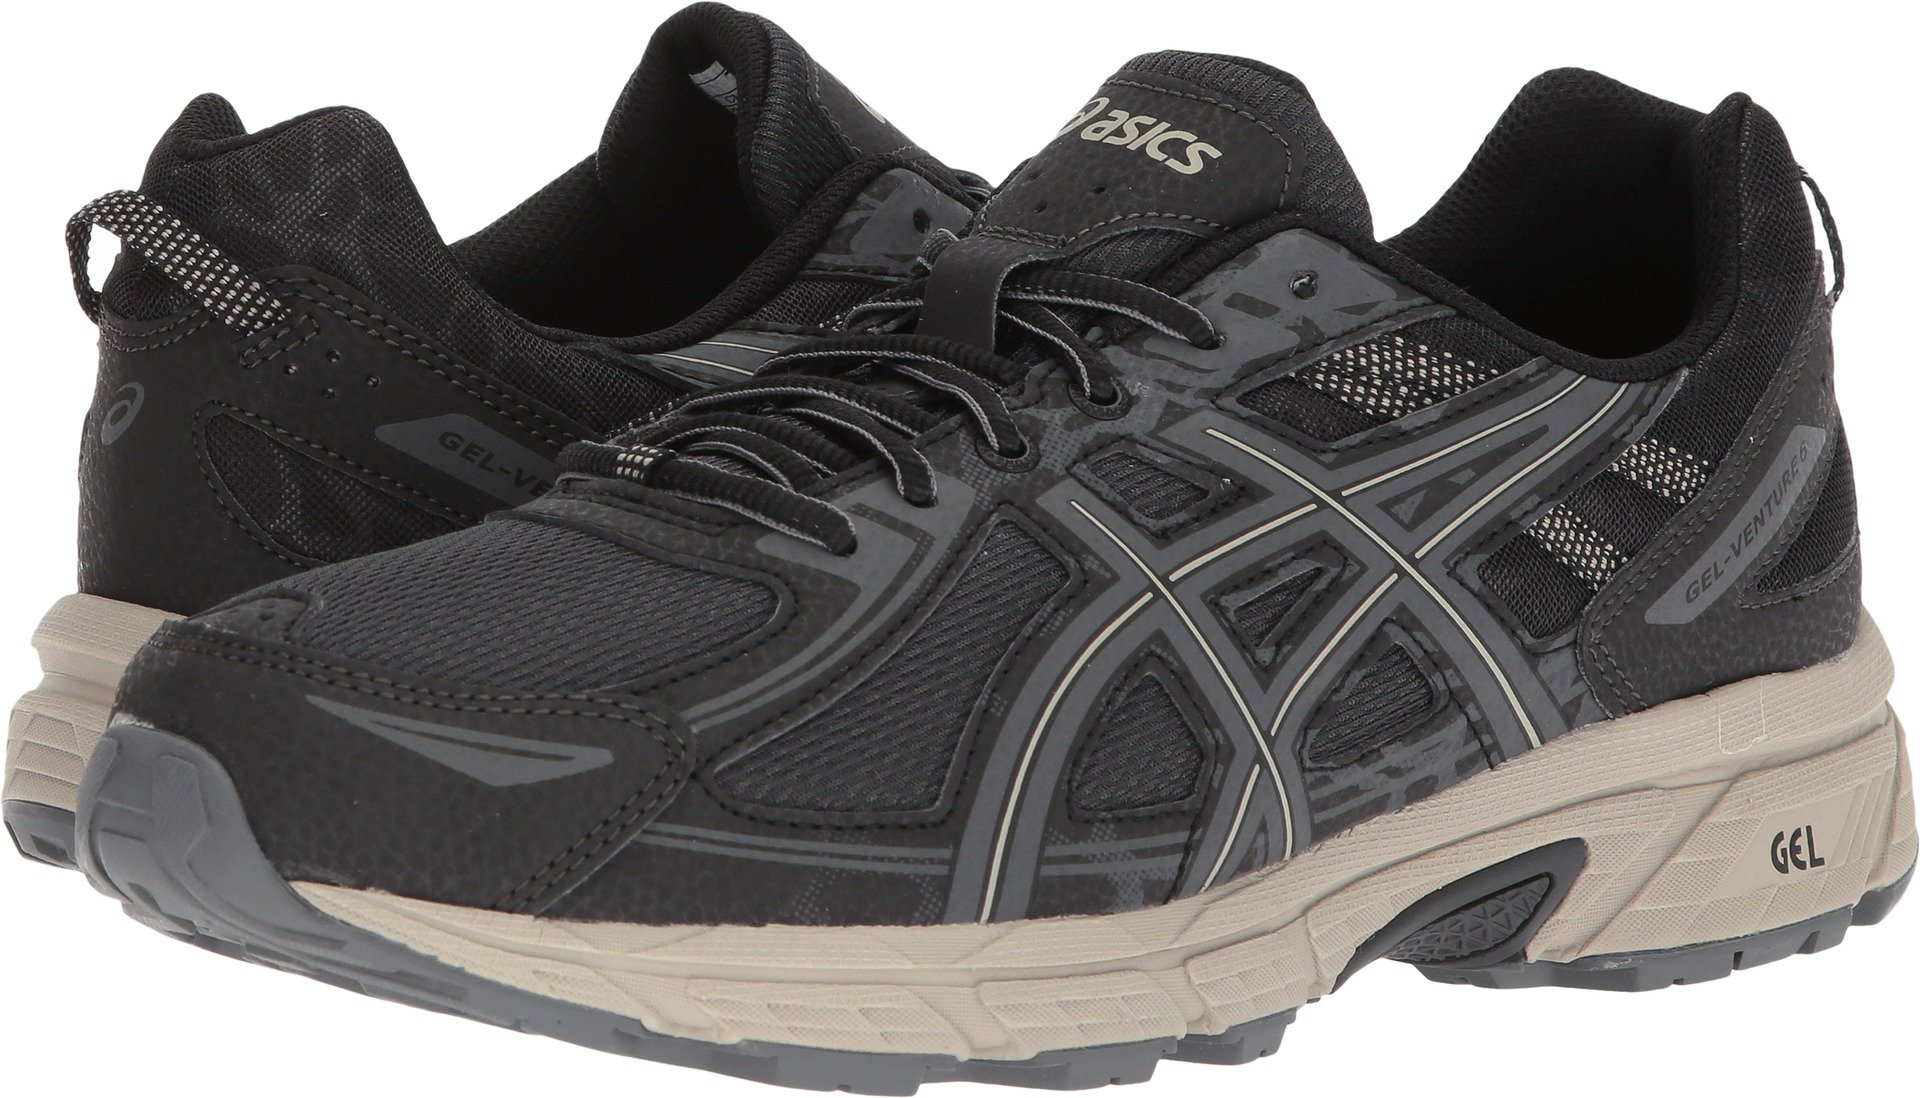 8f5daac51d8 Asics Men s Gel-Venture 6 Black Dark Grey Feather Ankle-High Running Shoe